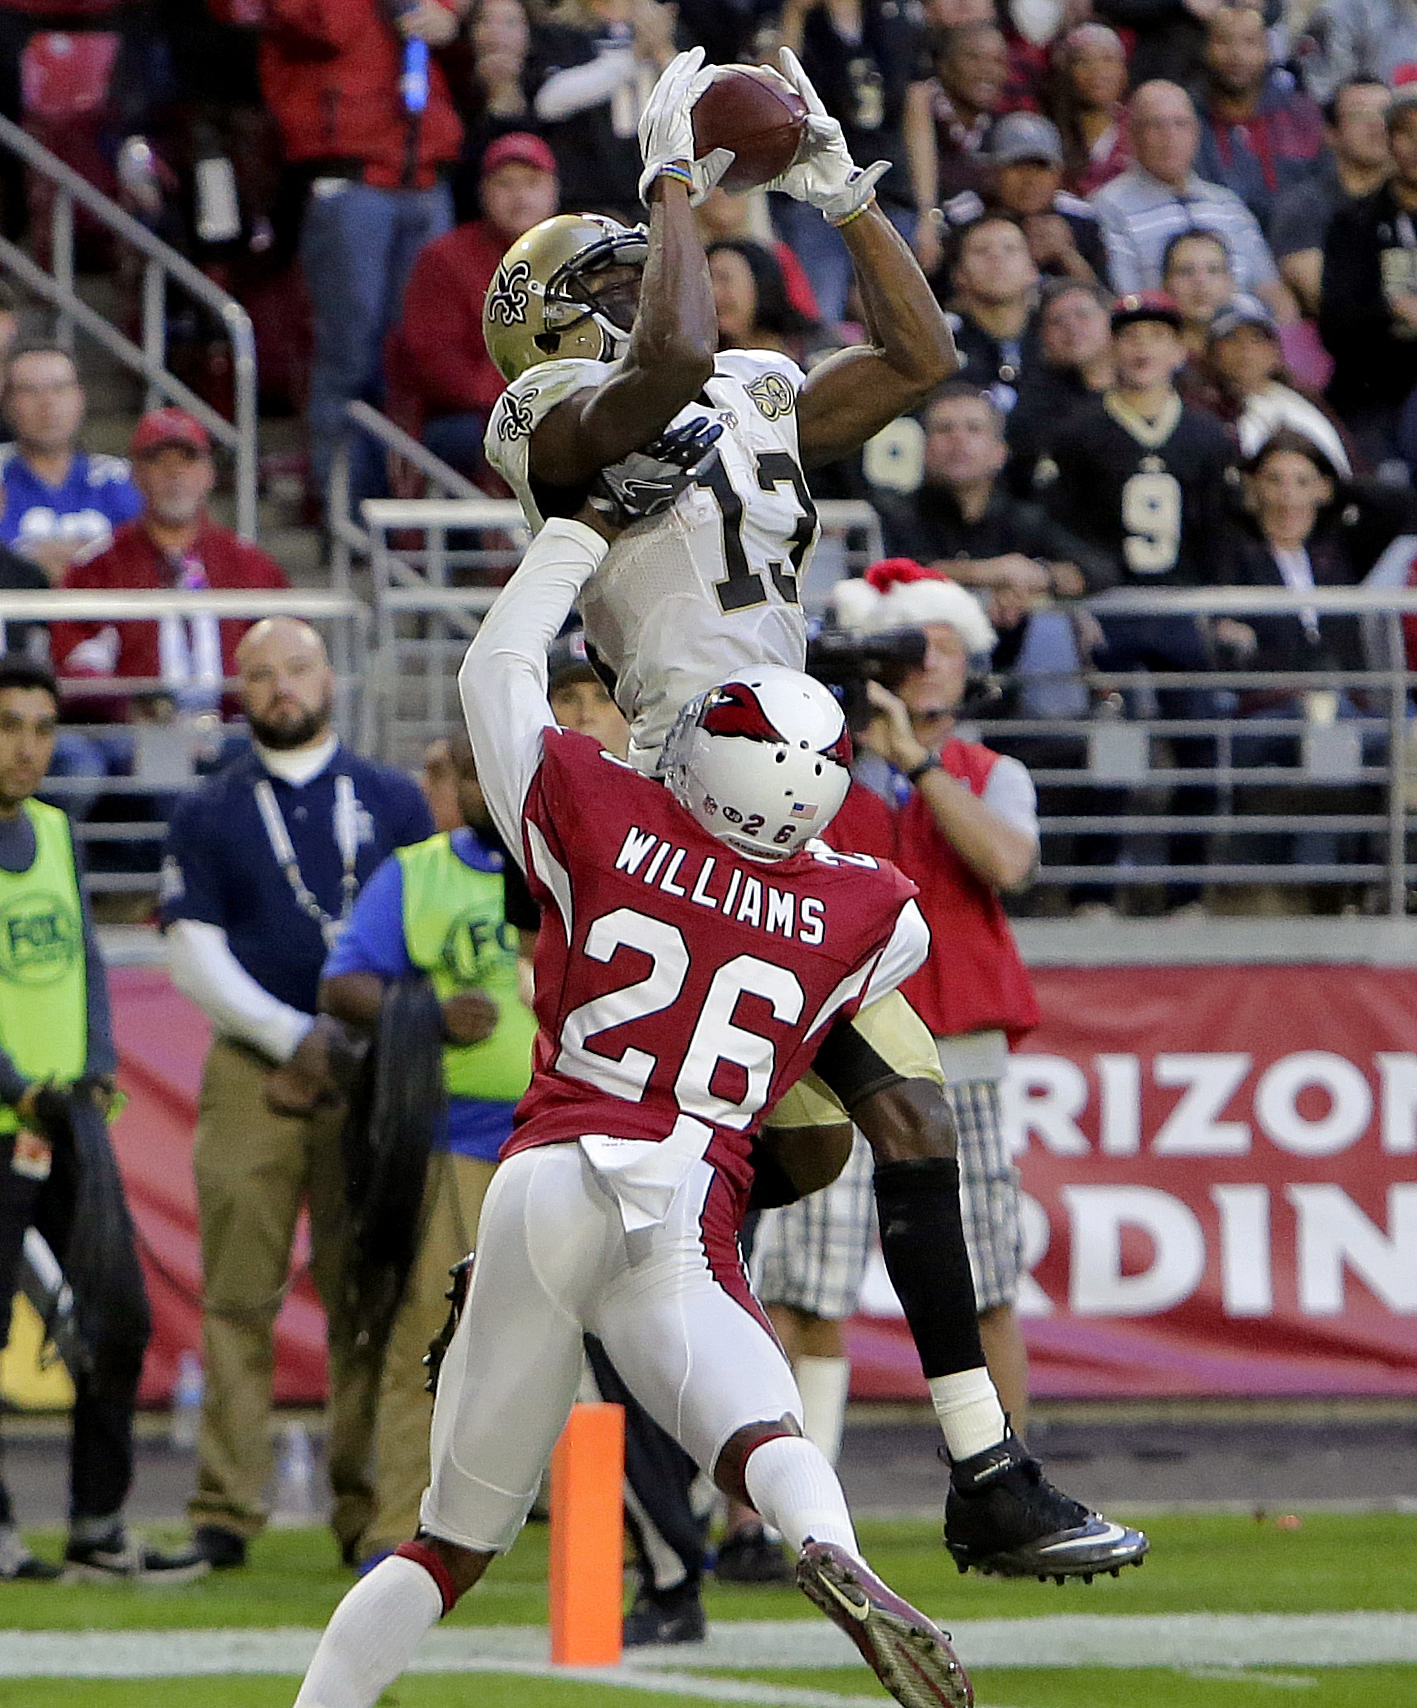 New Orleans Saints wide receiver Michael Thomas (13) makes a touchdown catch as Arizona Cardinals cornerback Brandon Williams (26) defends during the second half of an NFL football game, Sunday, Dec. 18, 2016, in Glendale, Ariz. (AP Photo/Rick Scuteri)